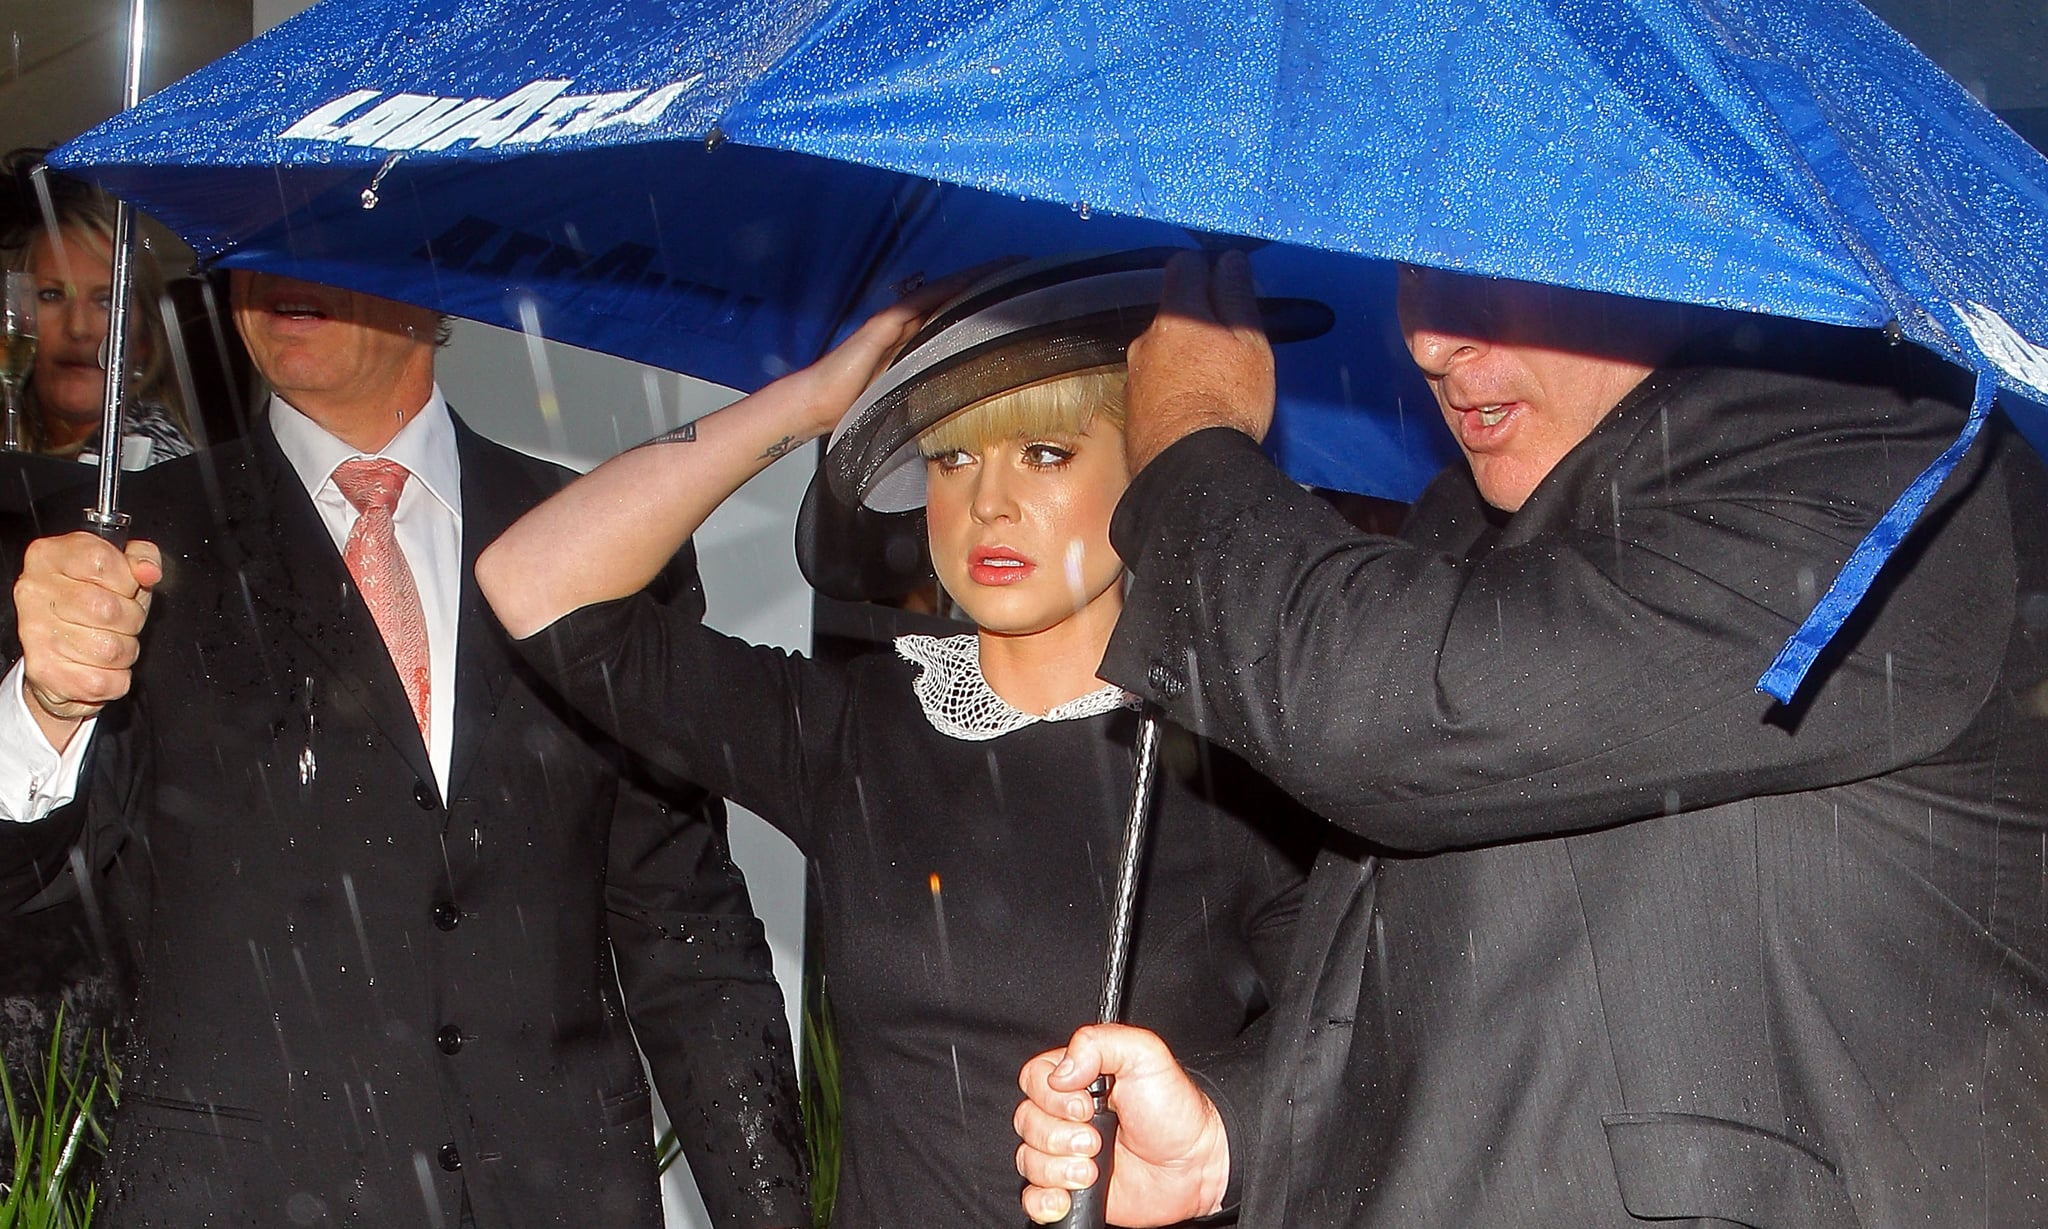 Kelly O makes sure she's well covered